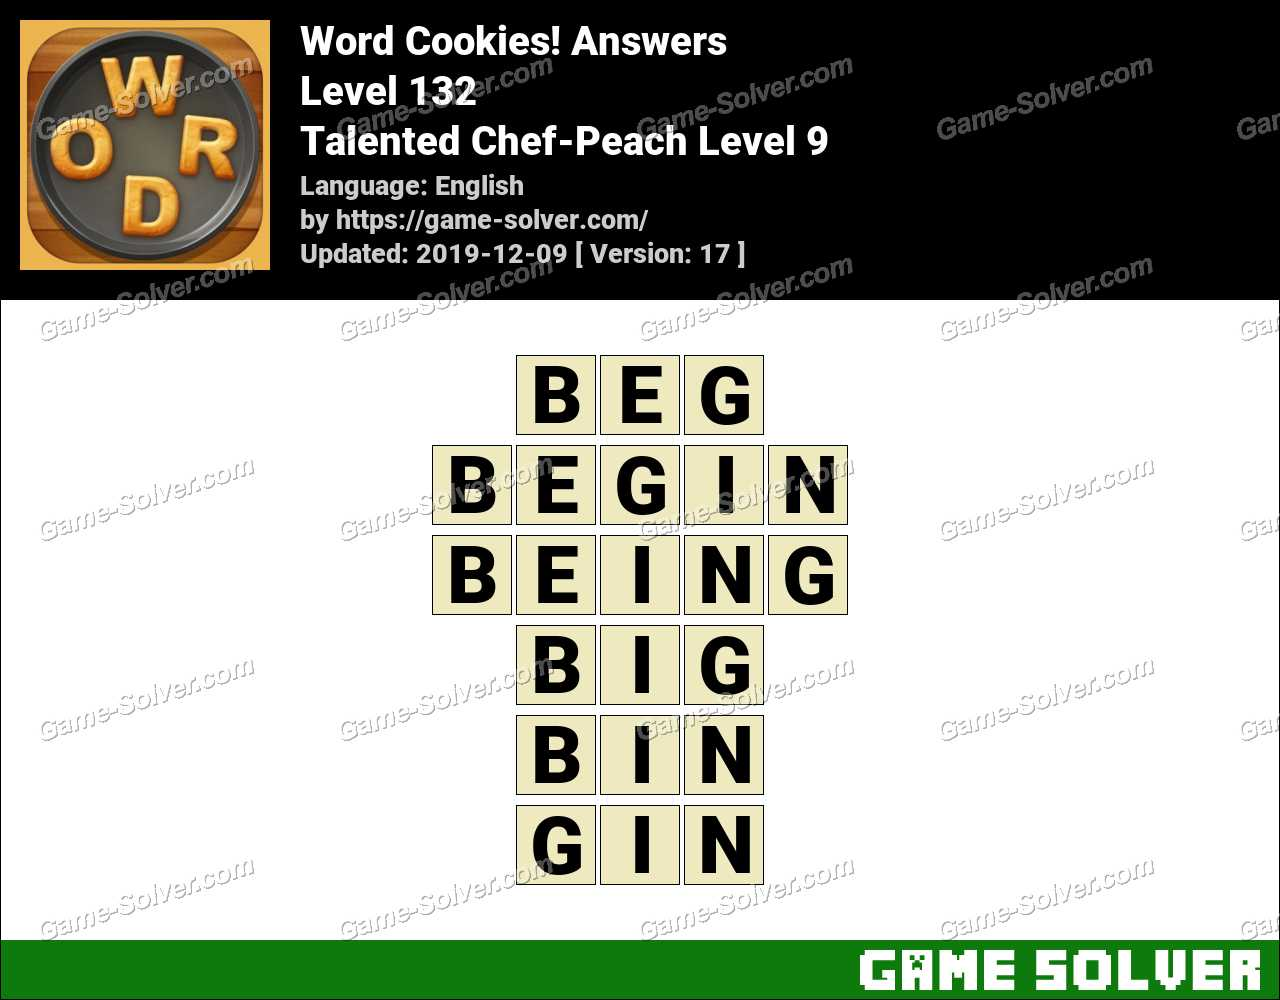 Word Cookies Talented Chef-Peach Level 9 Answers